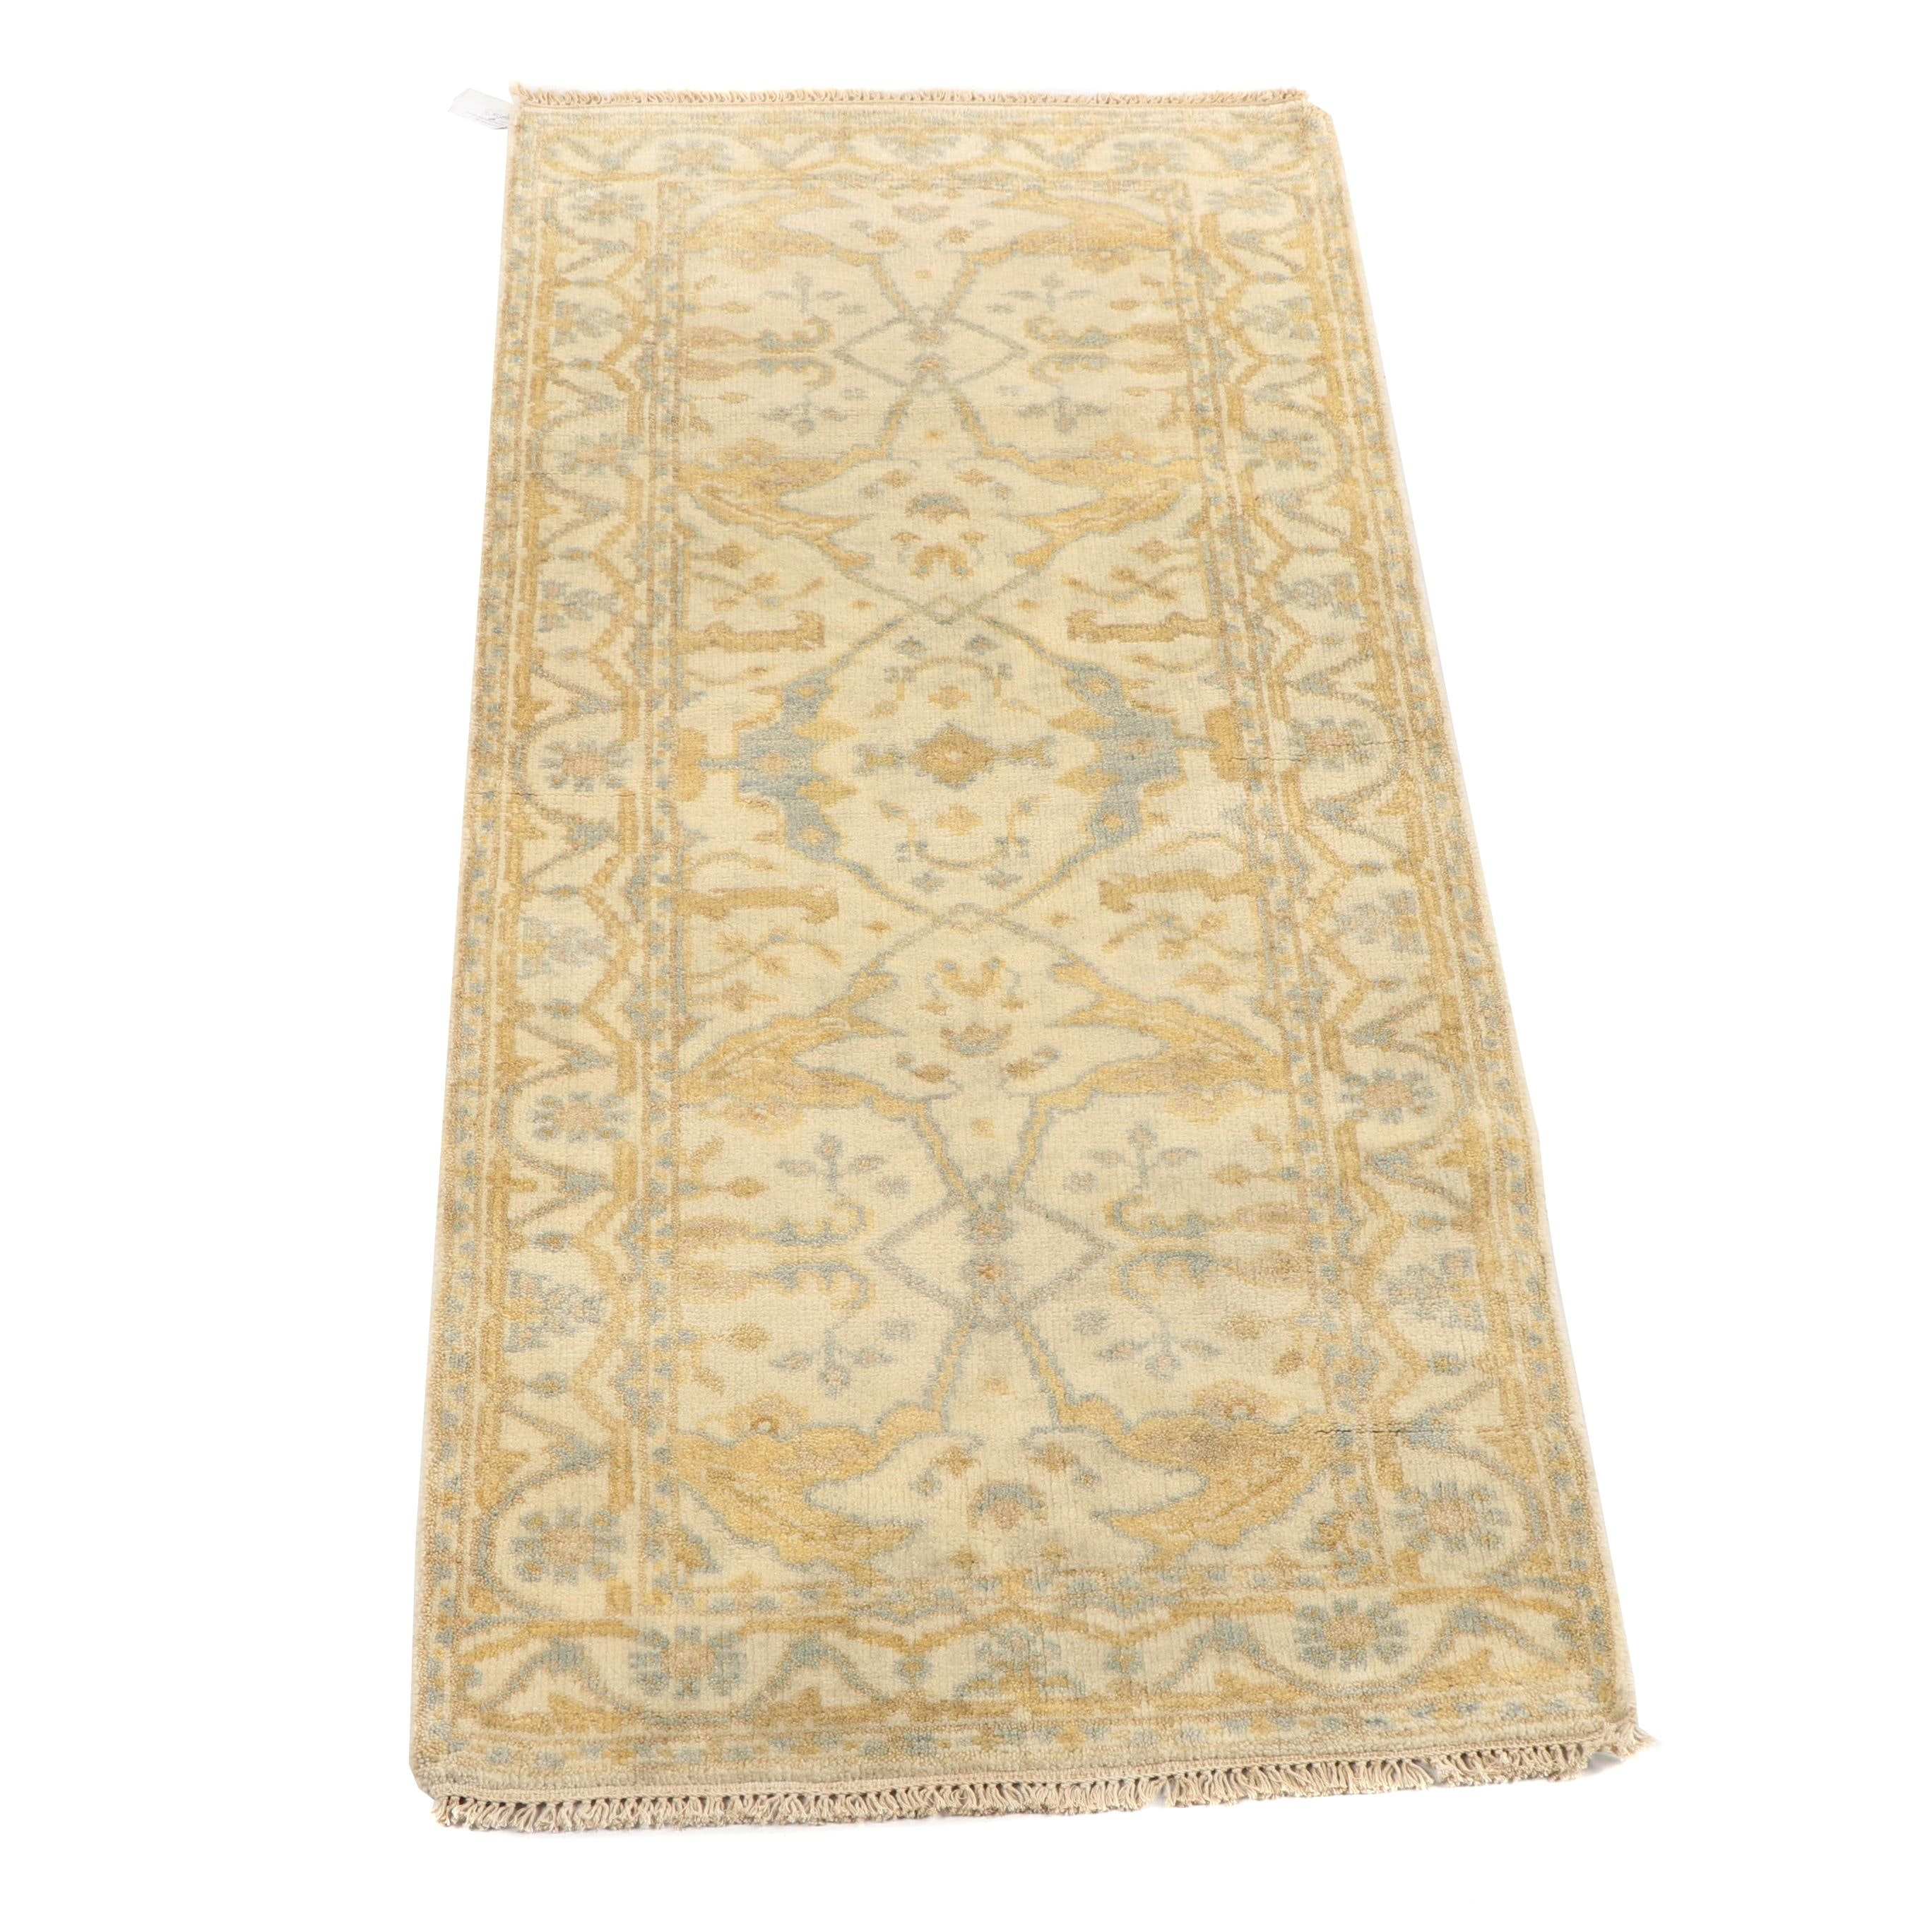 Hand-Knotted Indo-Oushak Wool Accent Rug